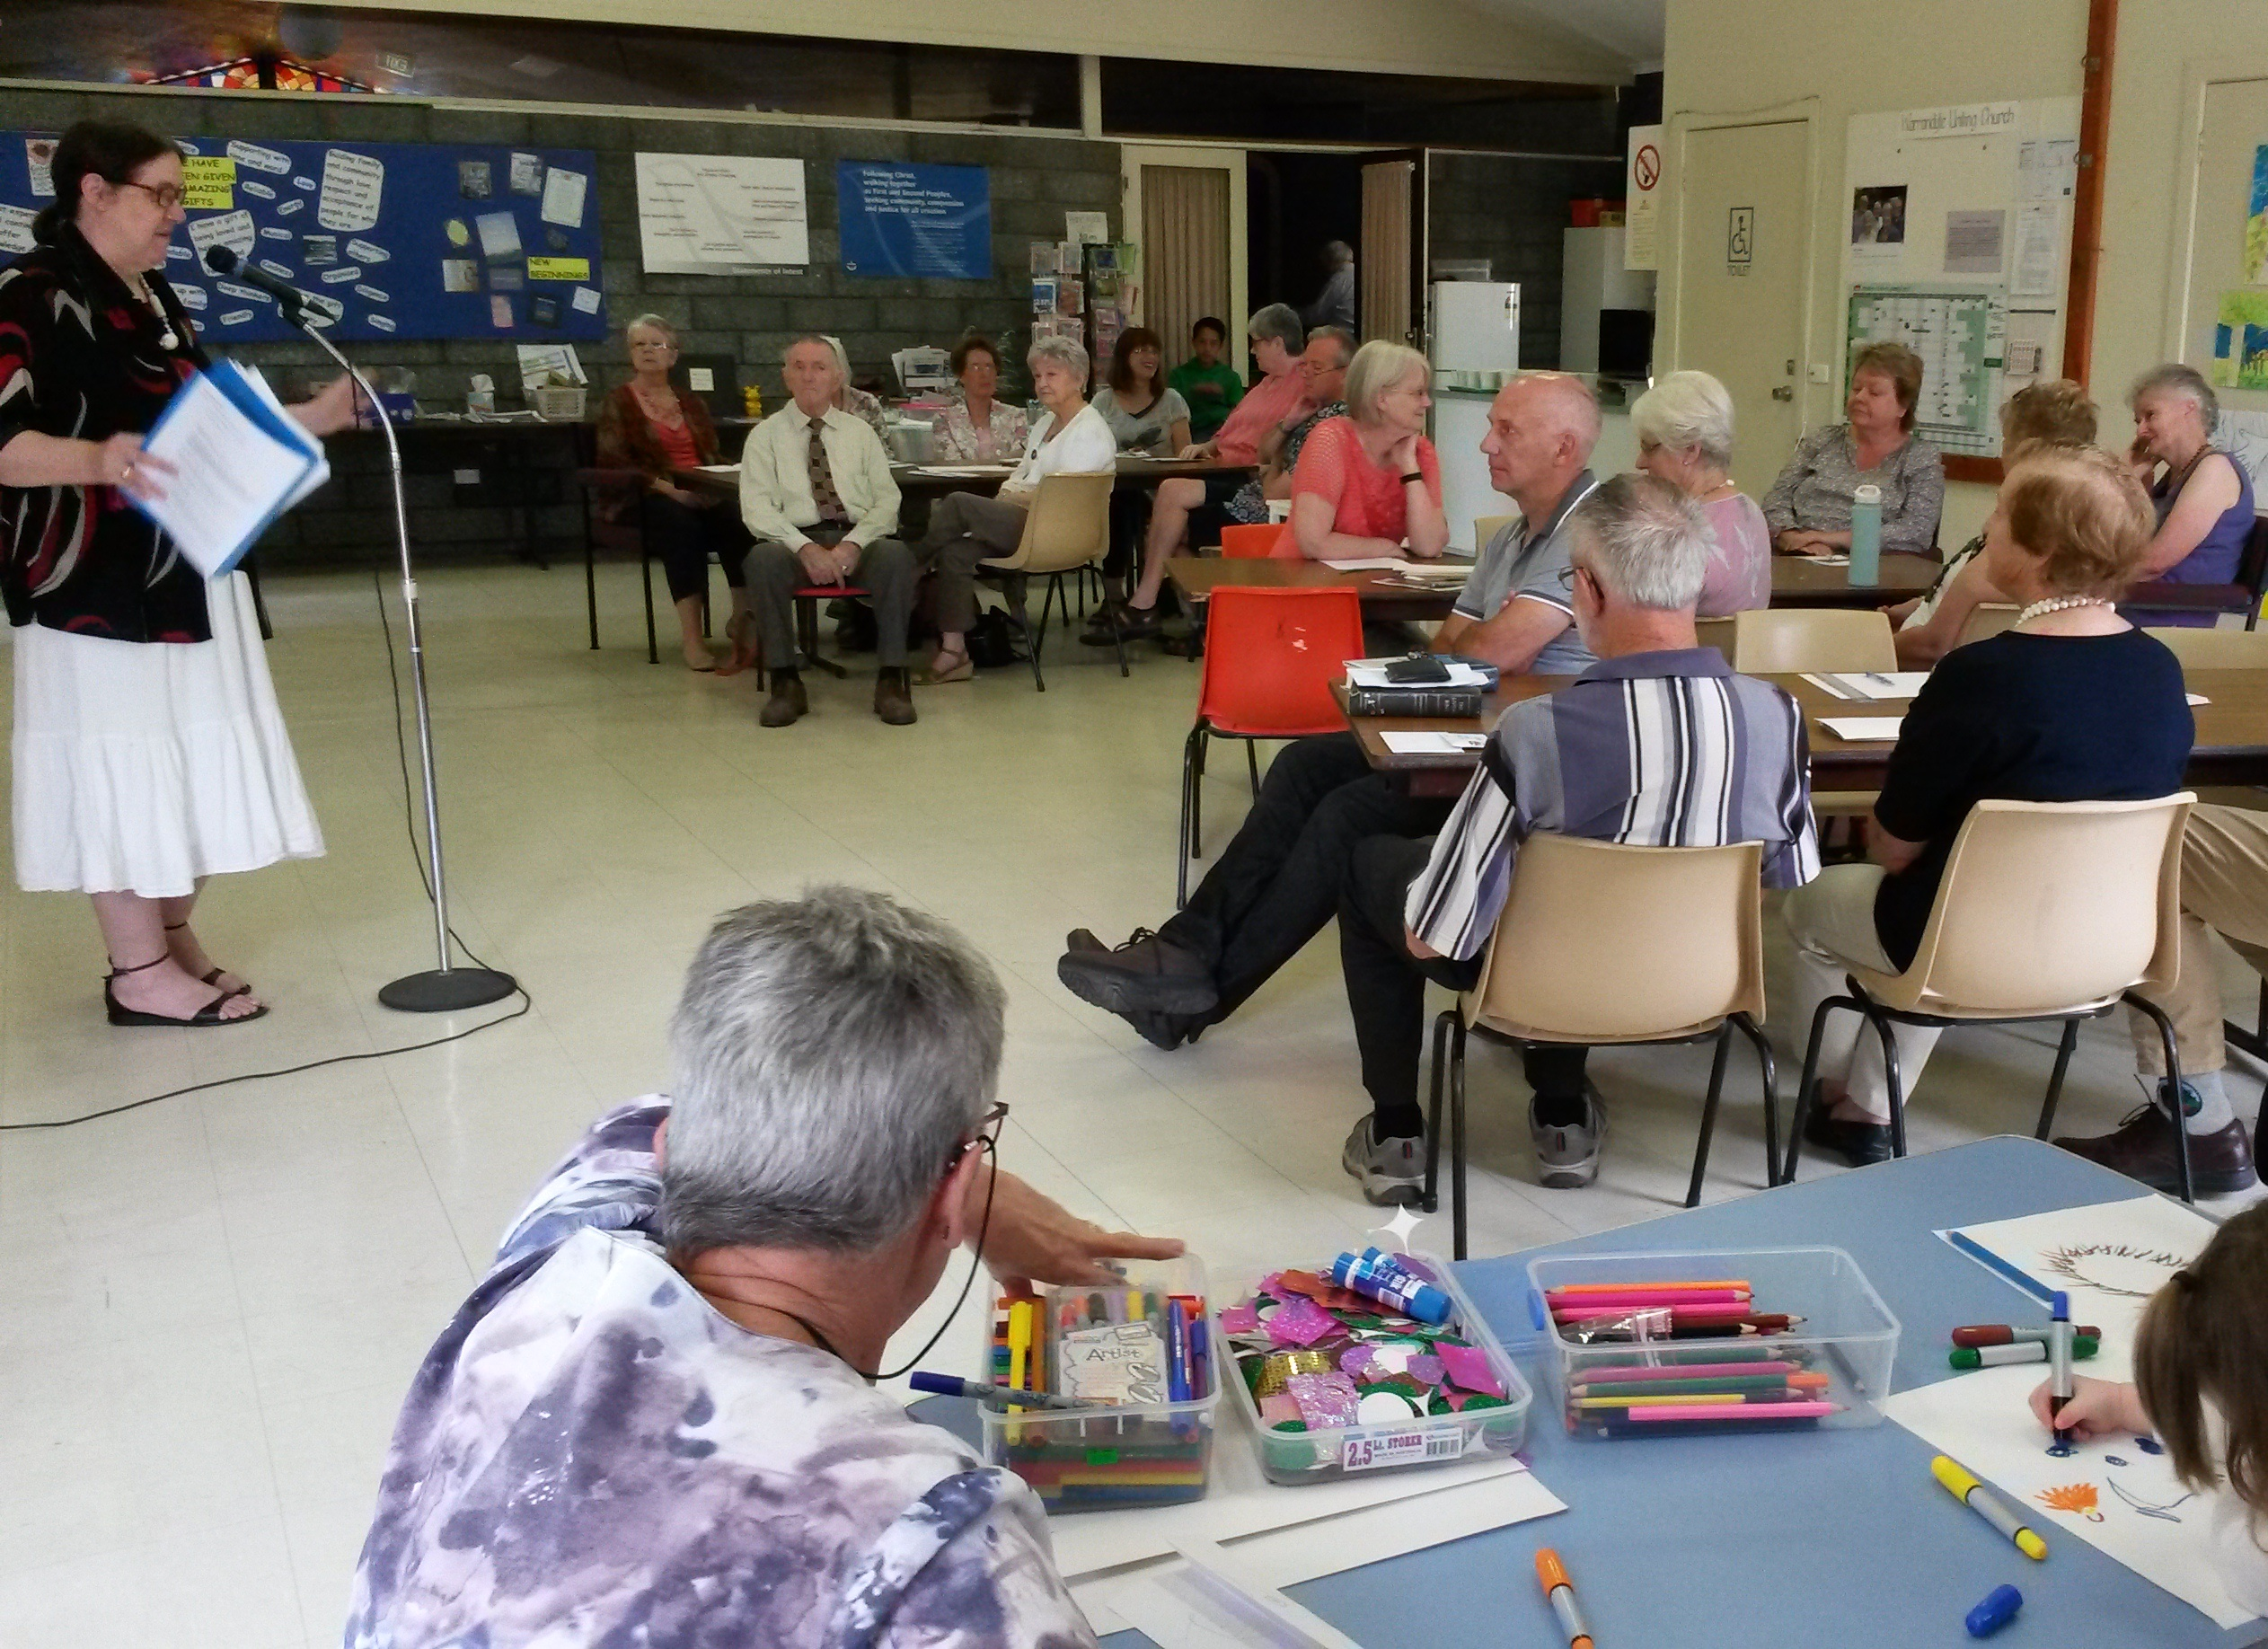 Warrandyte Uniting Church held a Vision exploring day in early 2017